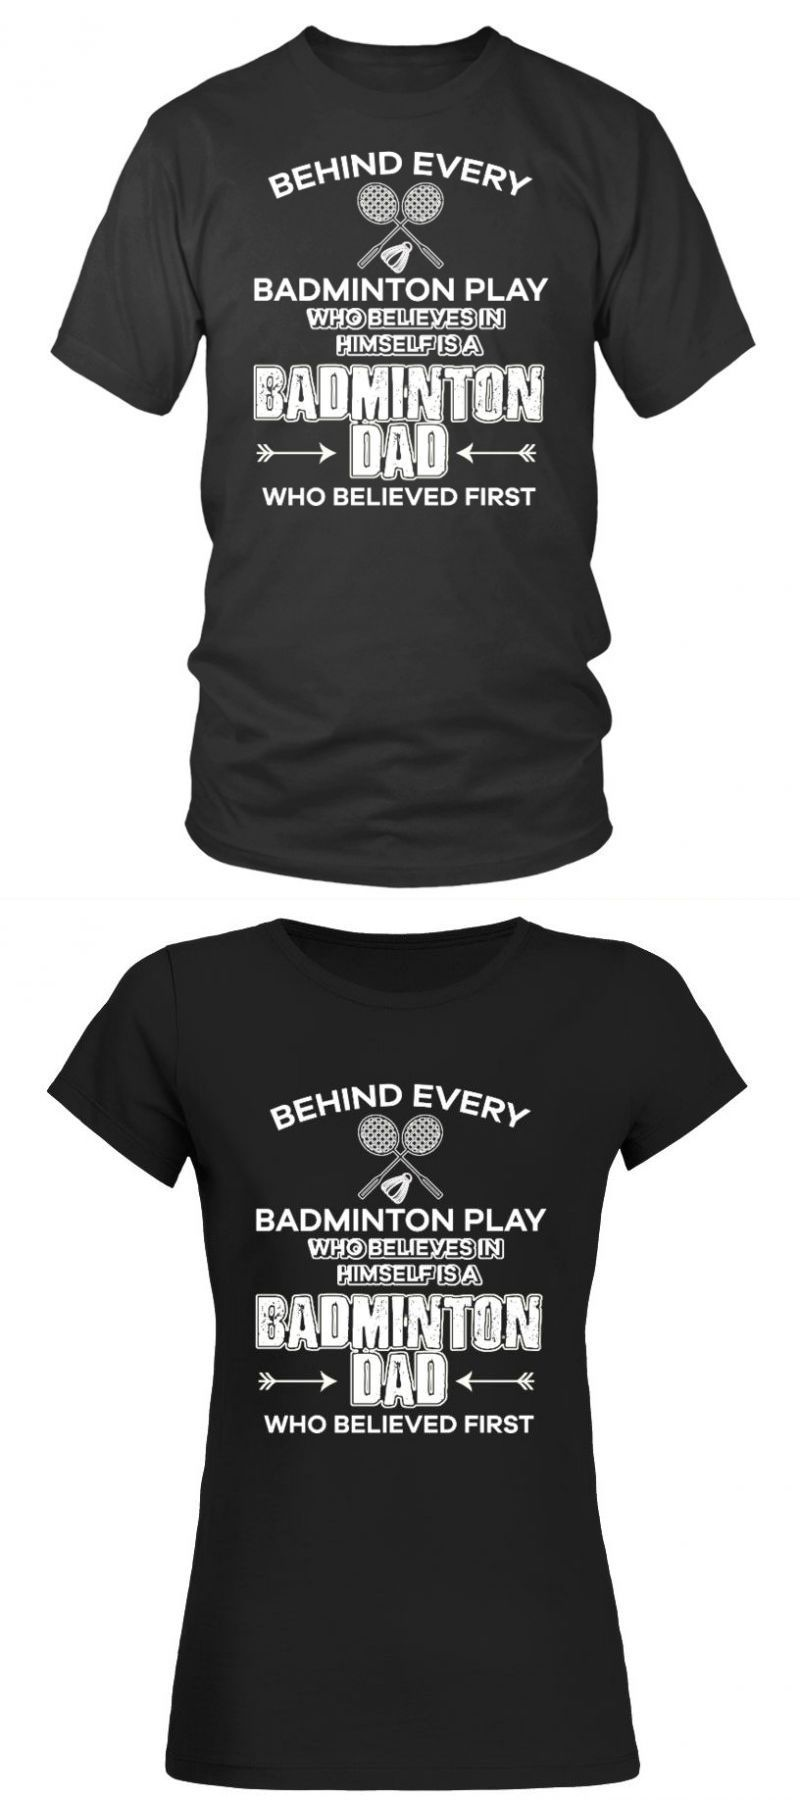 306d236e Badminton t shirt sprüche badminton dad believes shirt aliexpress badminton t  shirt #badminton #shirt